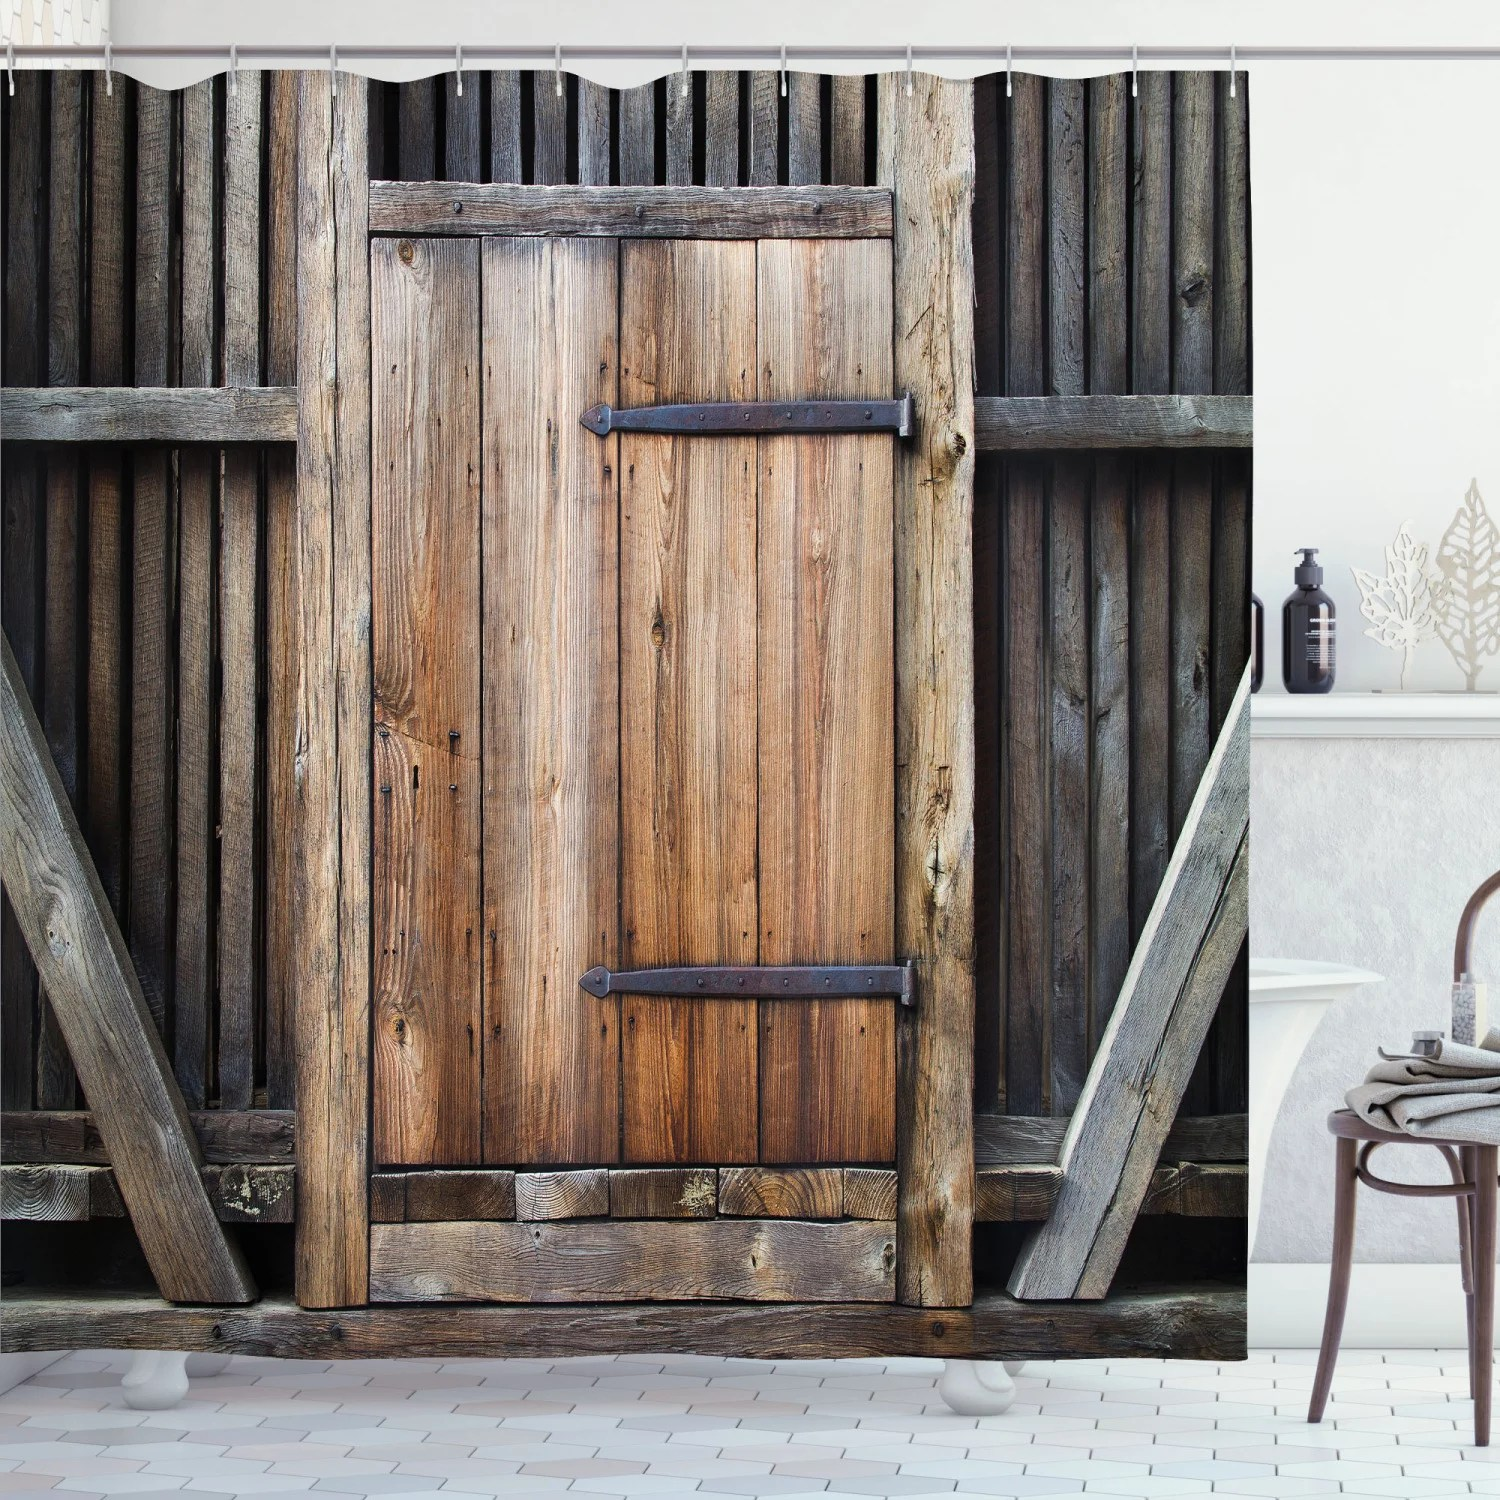 antique decor shower curtain set rustic antique wooden door exterior facades rural barn timber weathered bathroom accessories 69w x 70l inches by